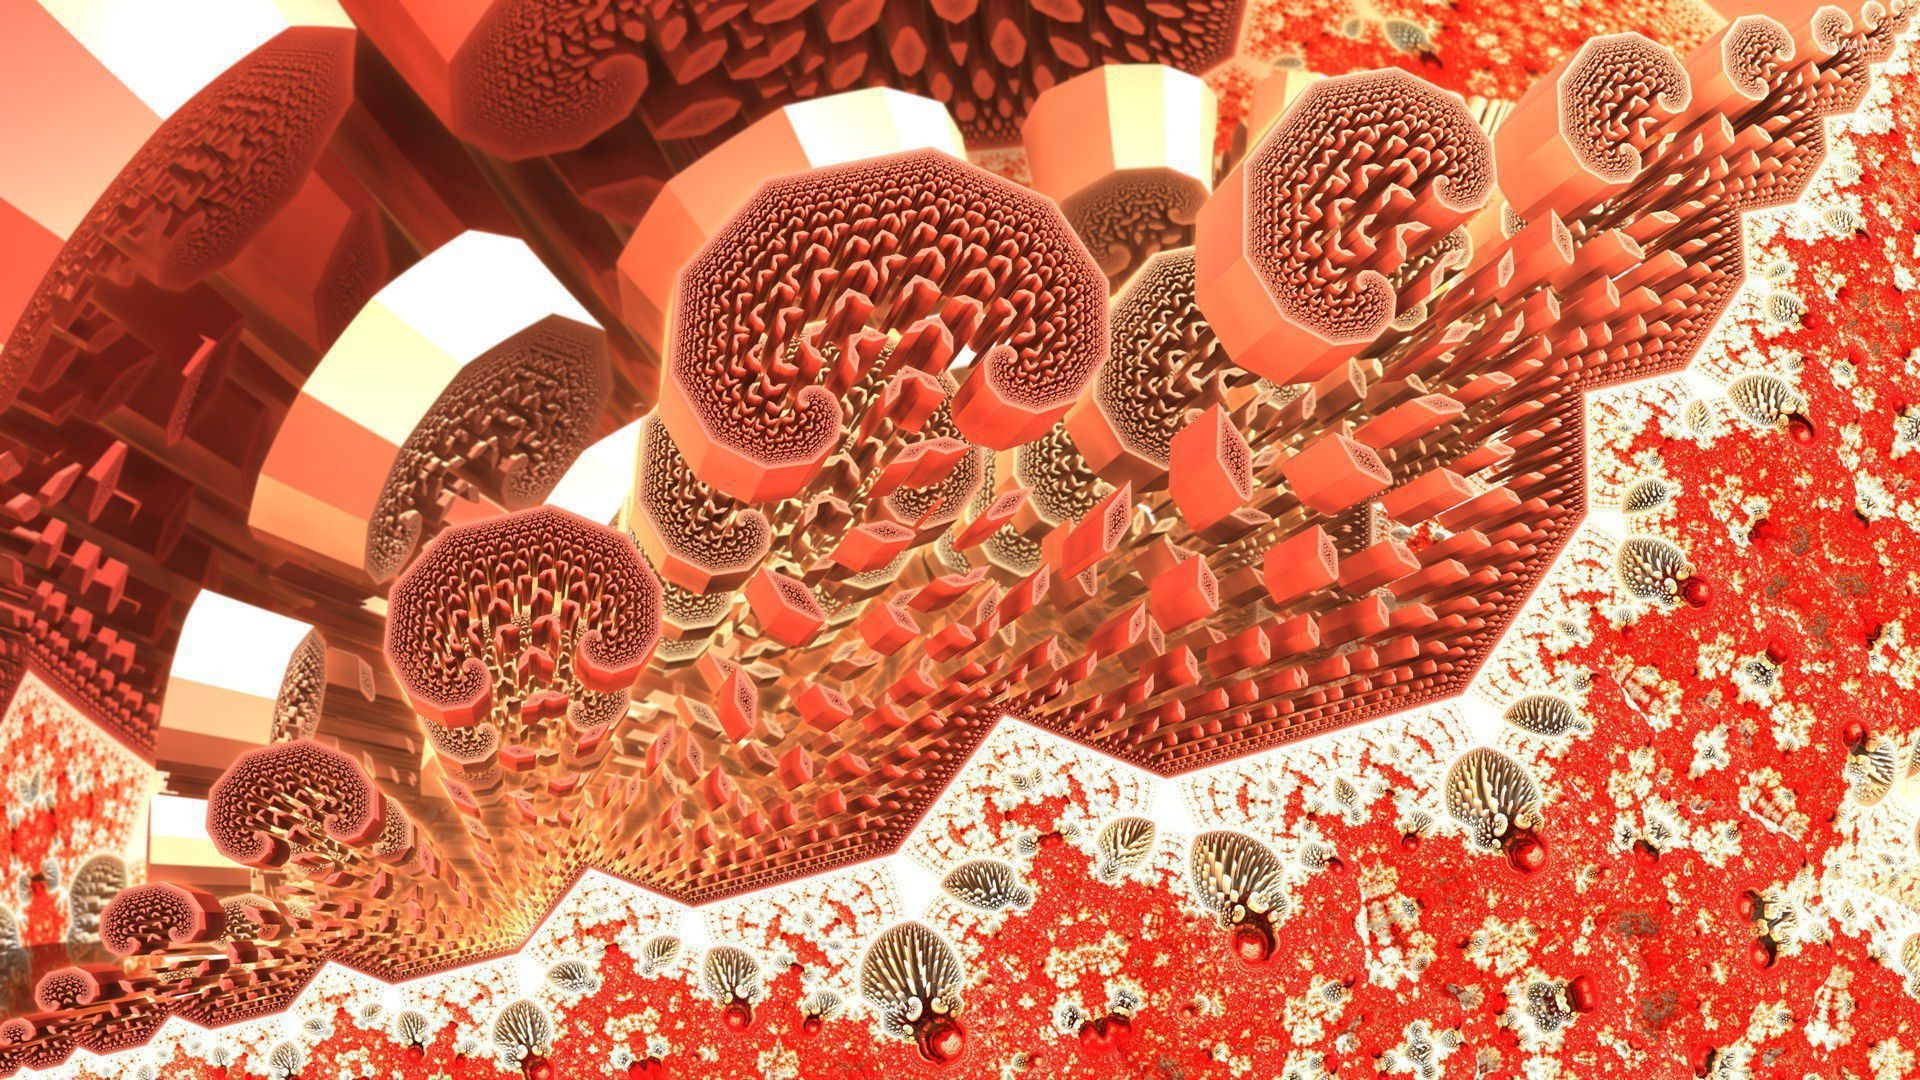 Blood Cells Computer Wallpaper